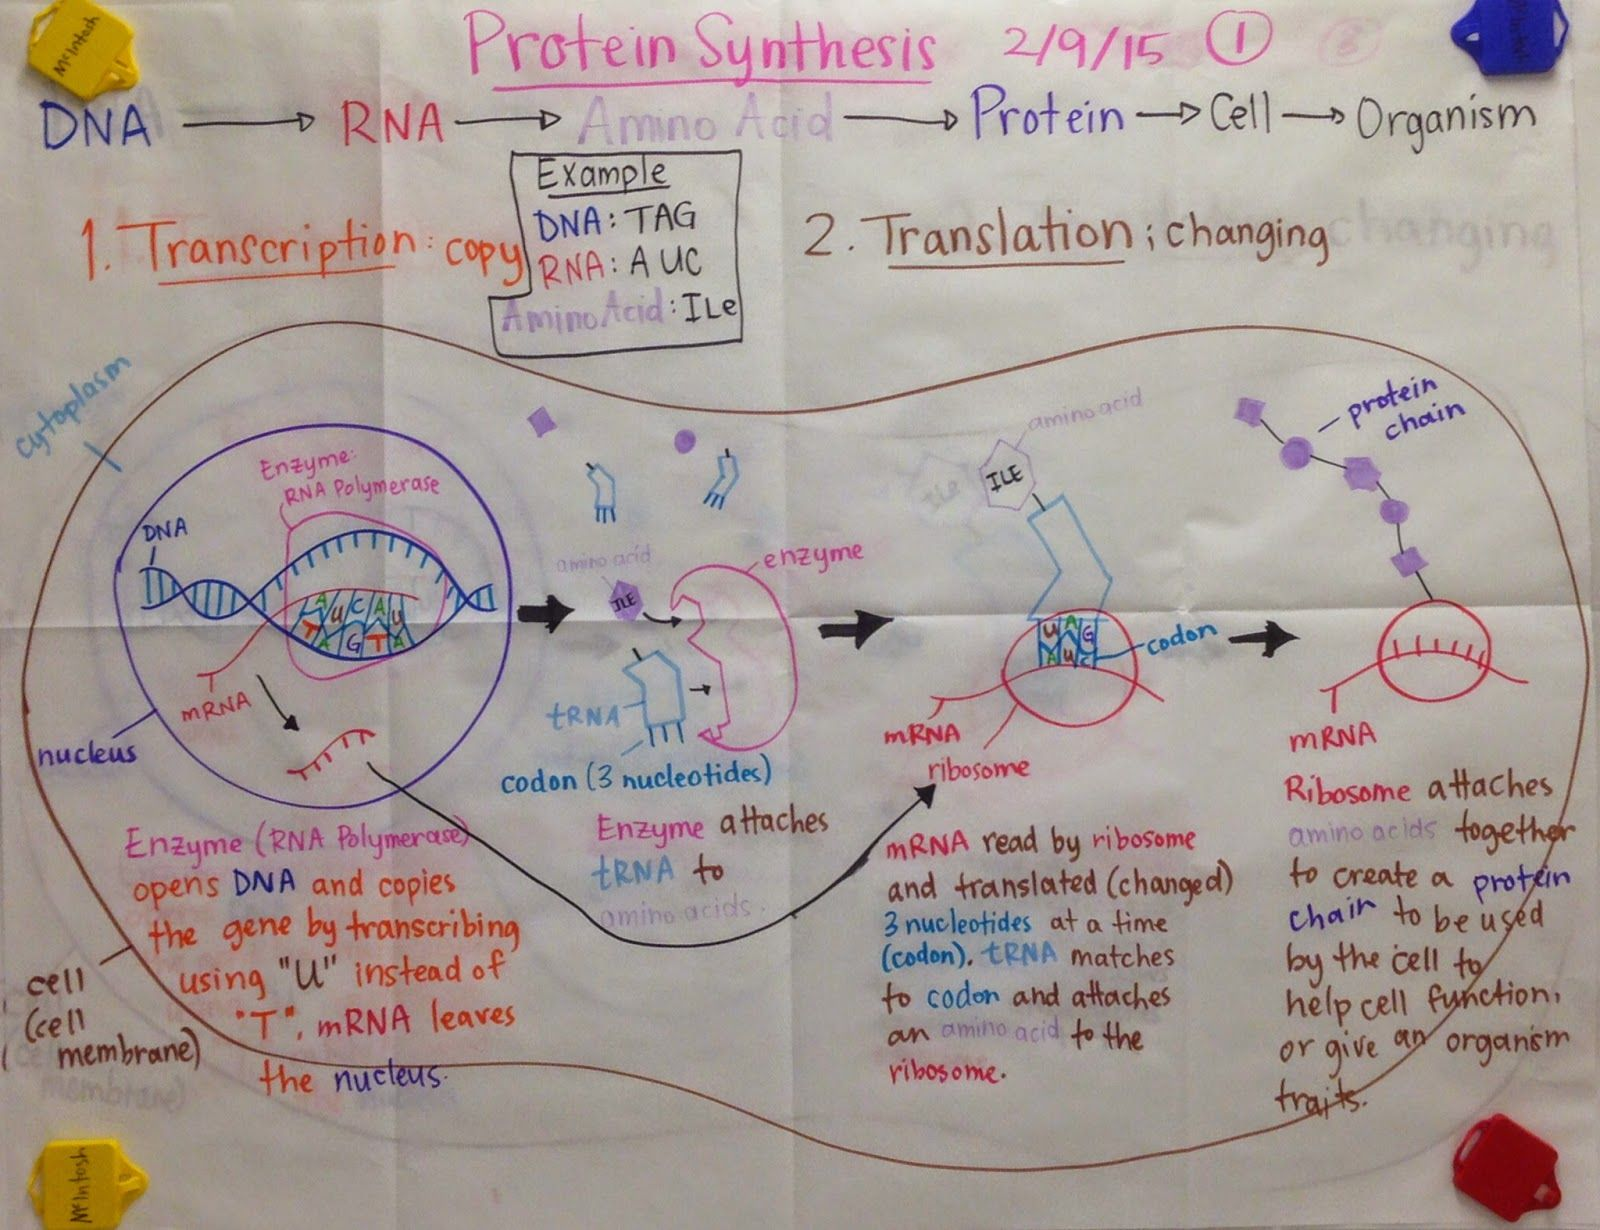 ap bio essay protein synthesis Now that we've described dna and rna, it's time to take a look at the process of protein synthesis the synthesis of proteins takes two steps: transcription and.